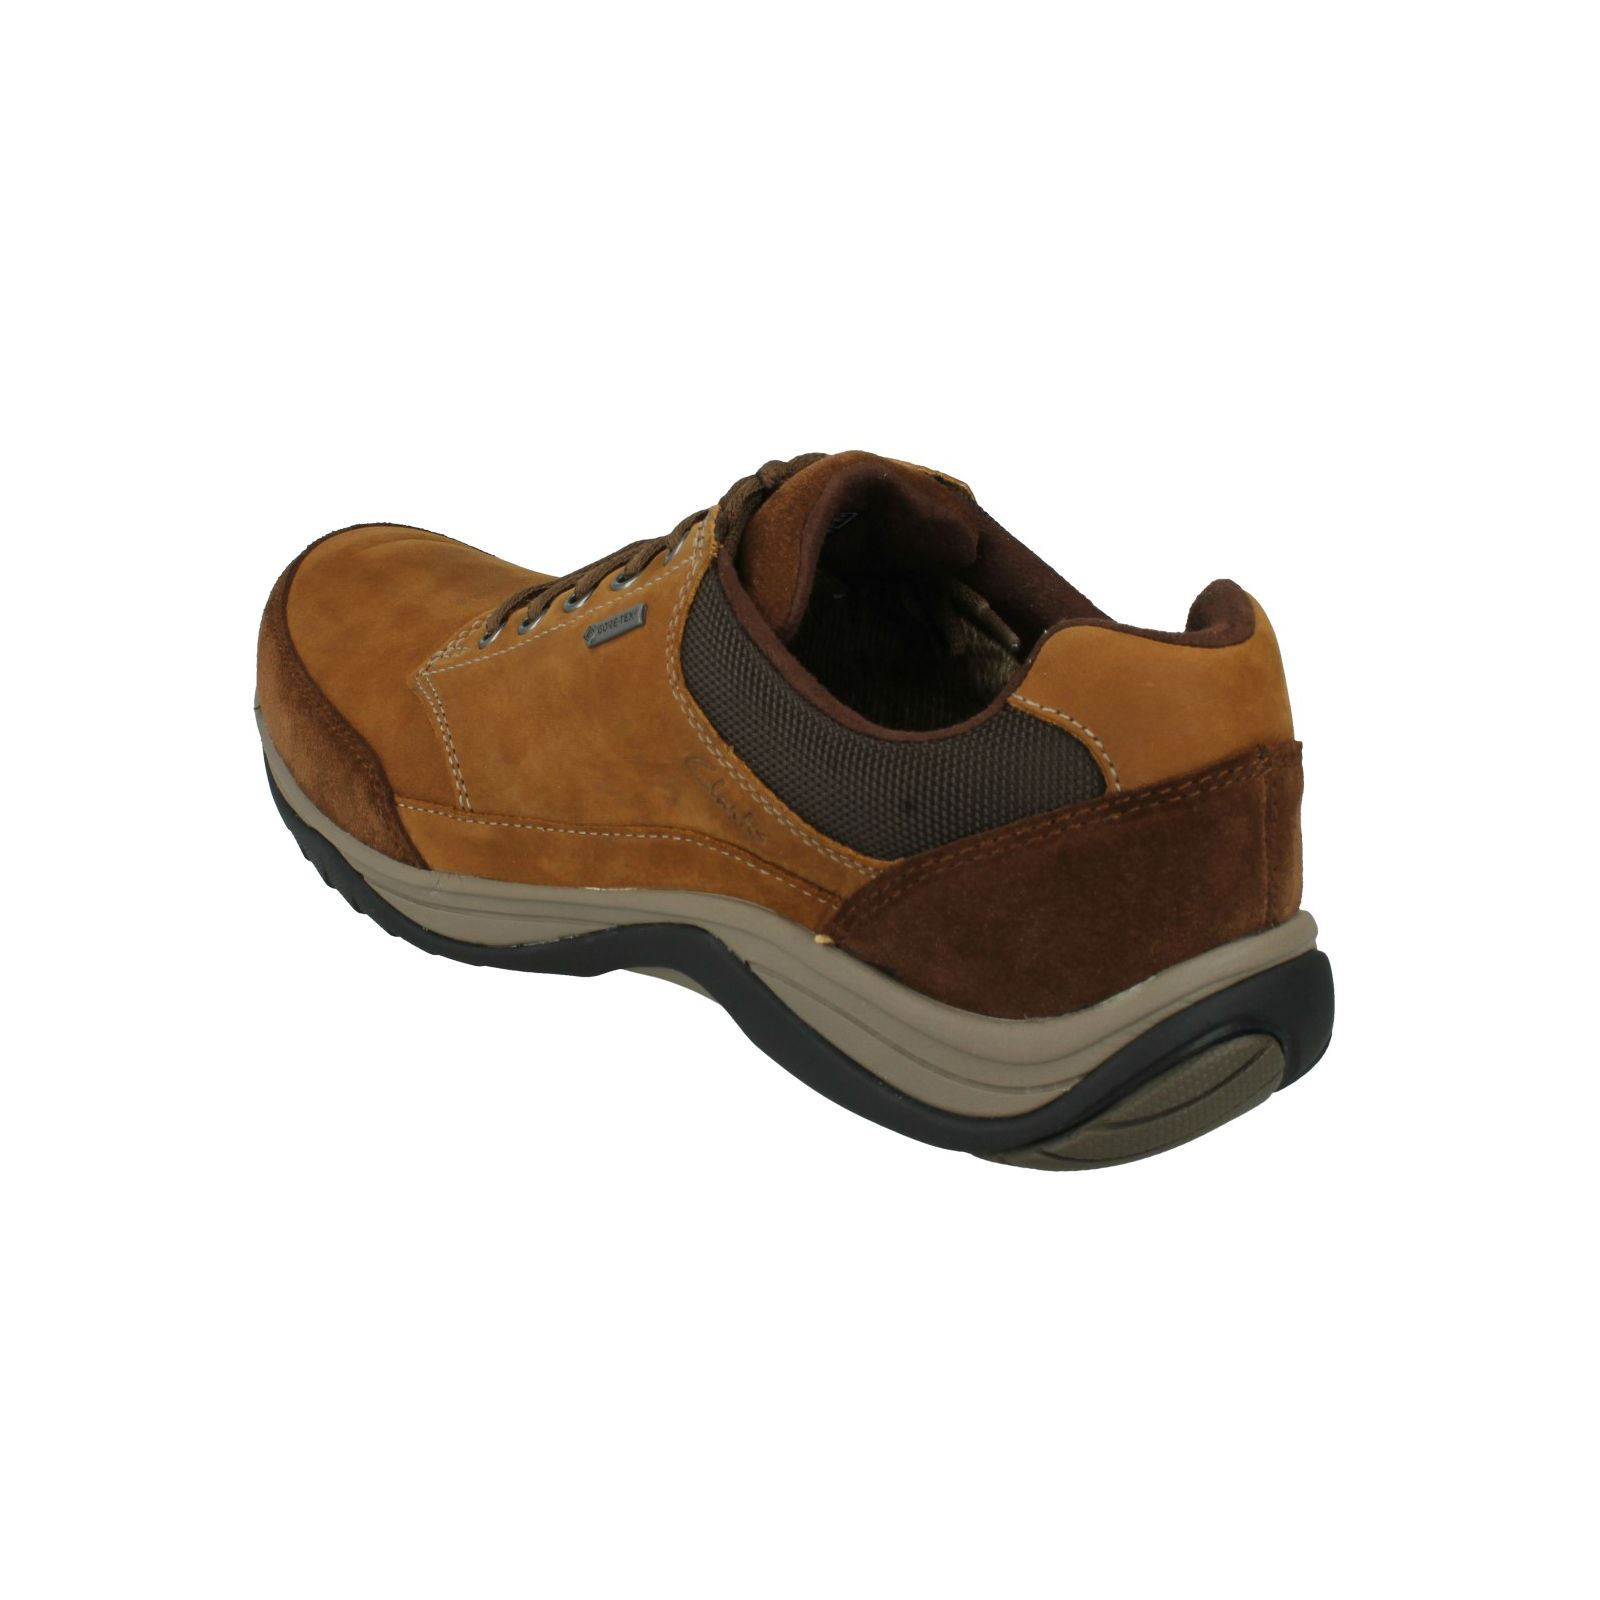 Herren Clarks Style gore-texlace up shoes Style Clarks - baystonego GTX f284c8